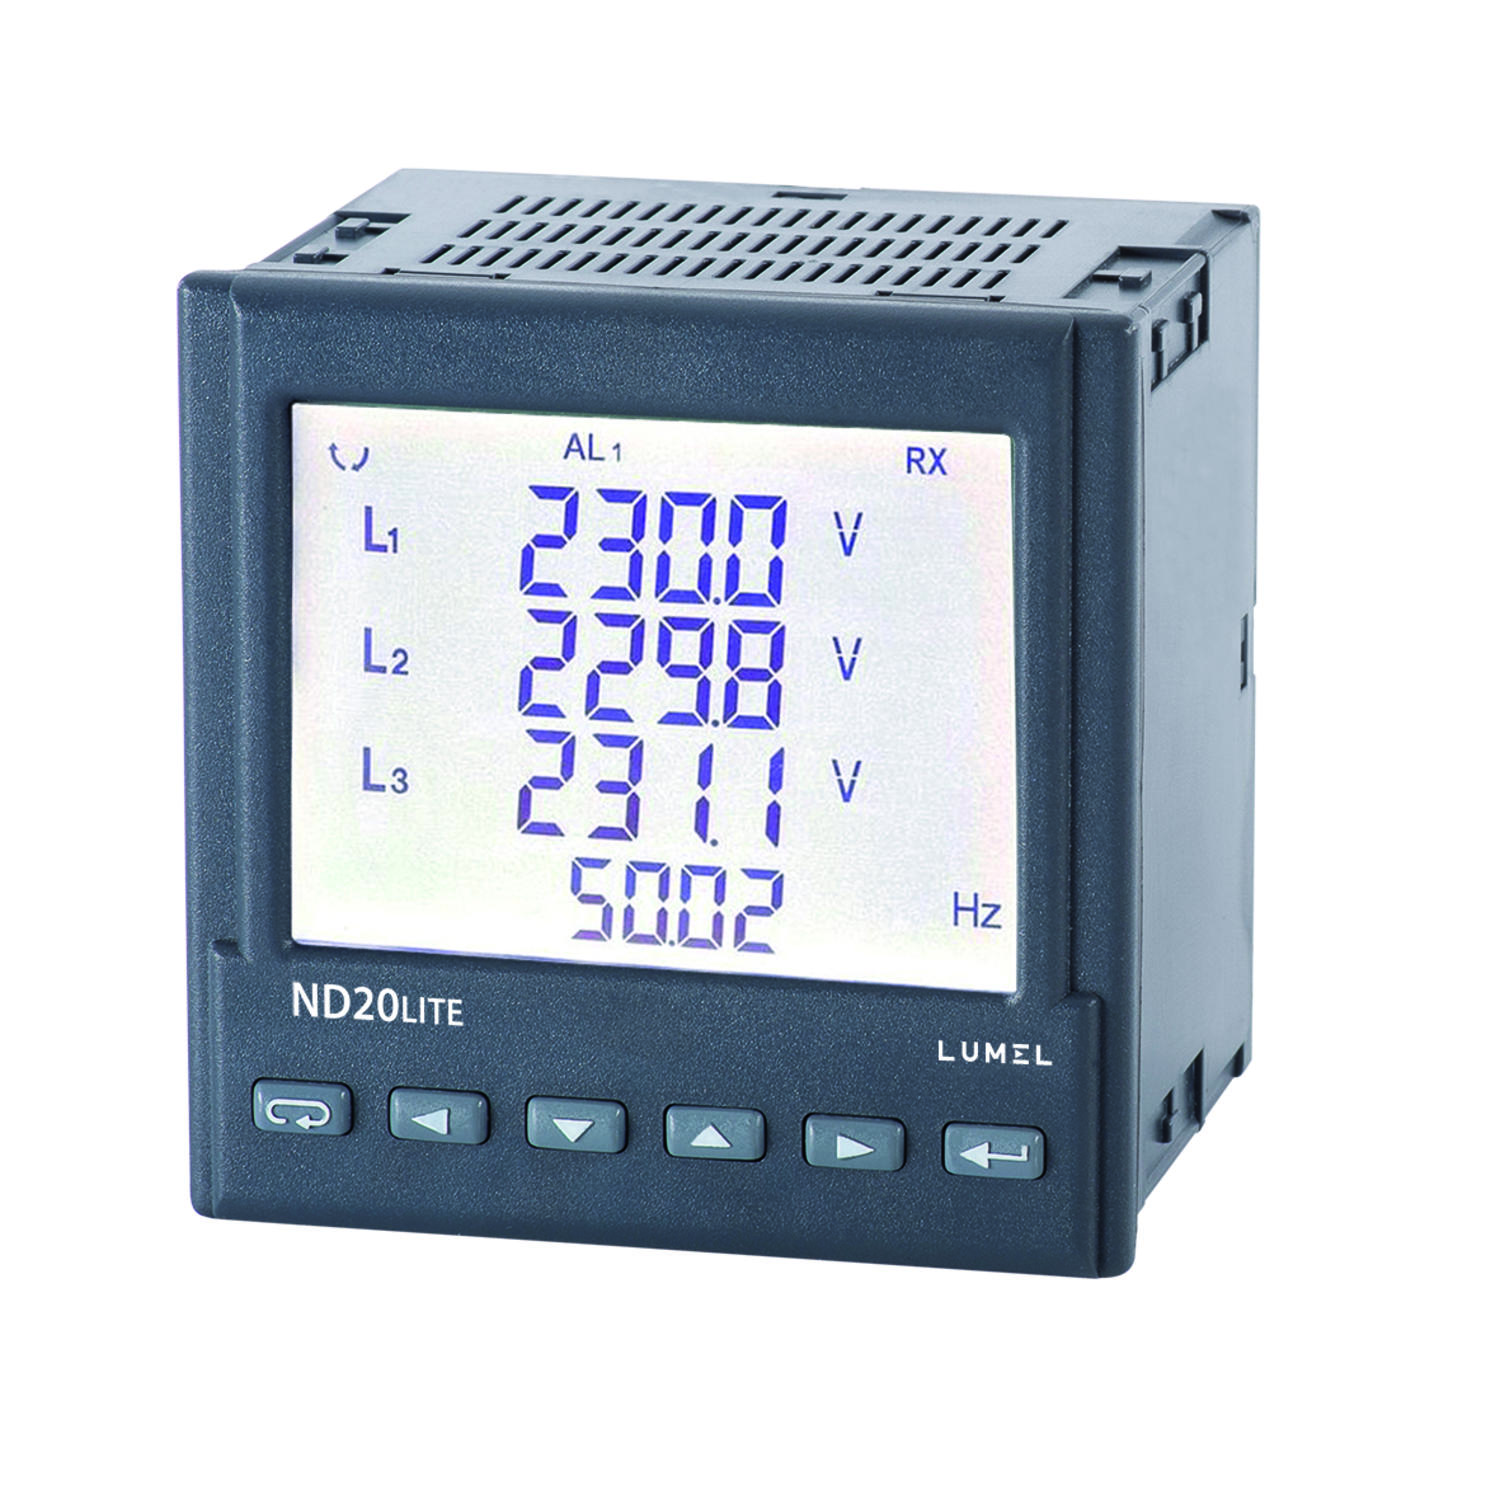 3-Phase Network Meter, ND20Lite